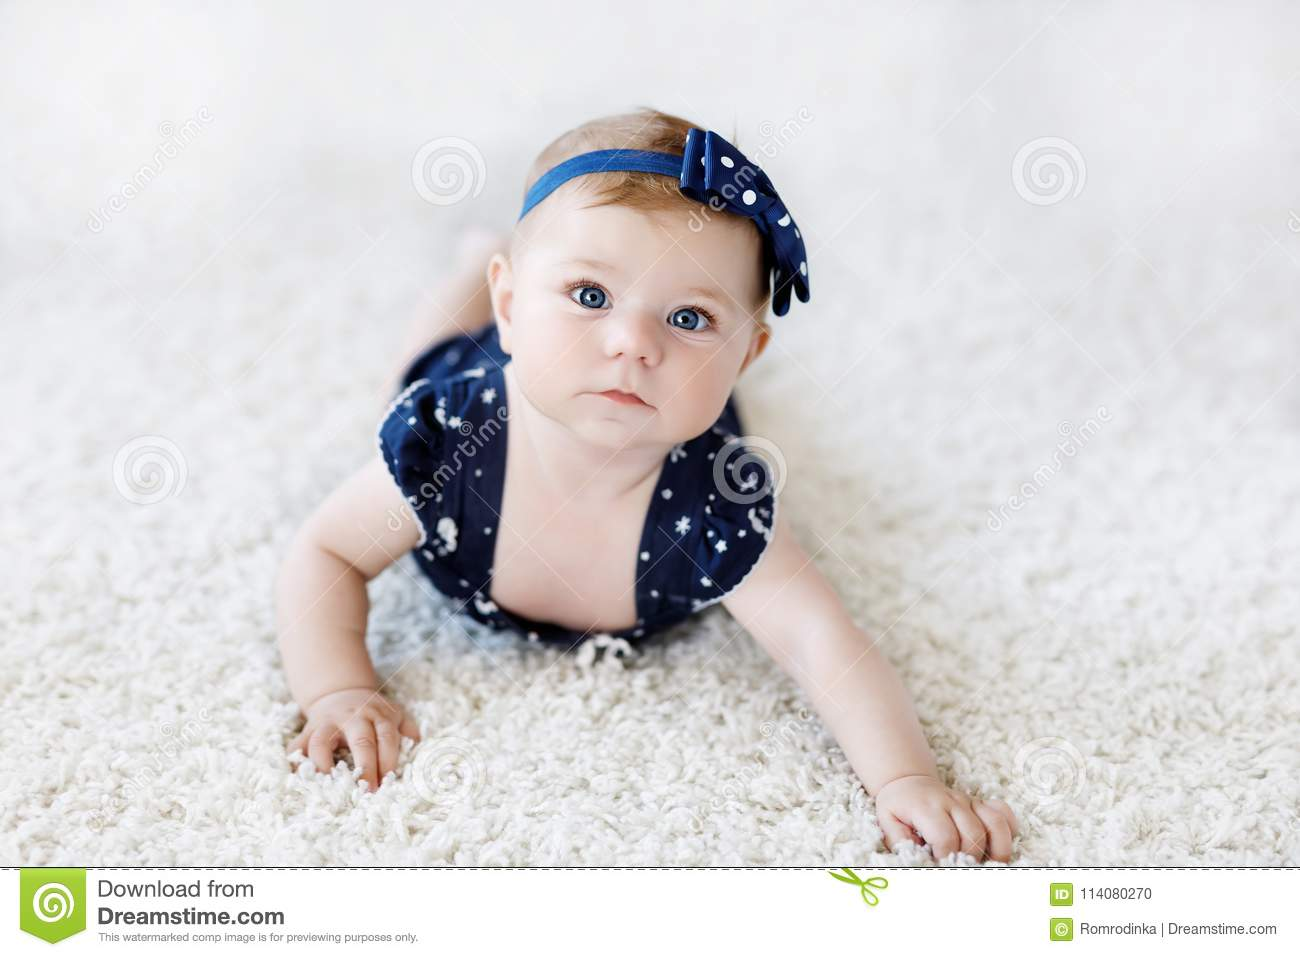 995eb1ad8 Cute Adorable Baby Girl In Blue Clothes And Headband. Stock Photo ...